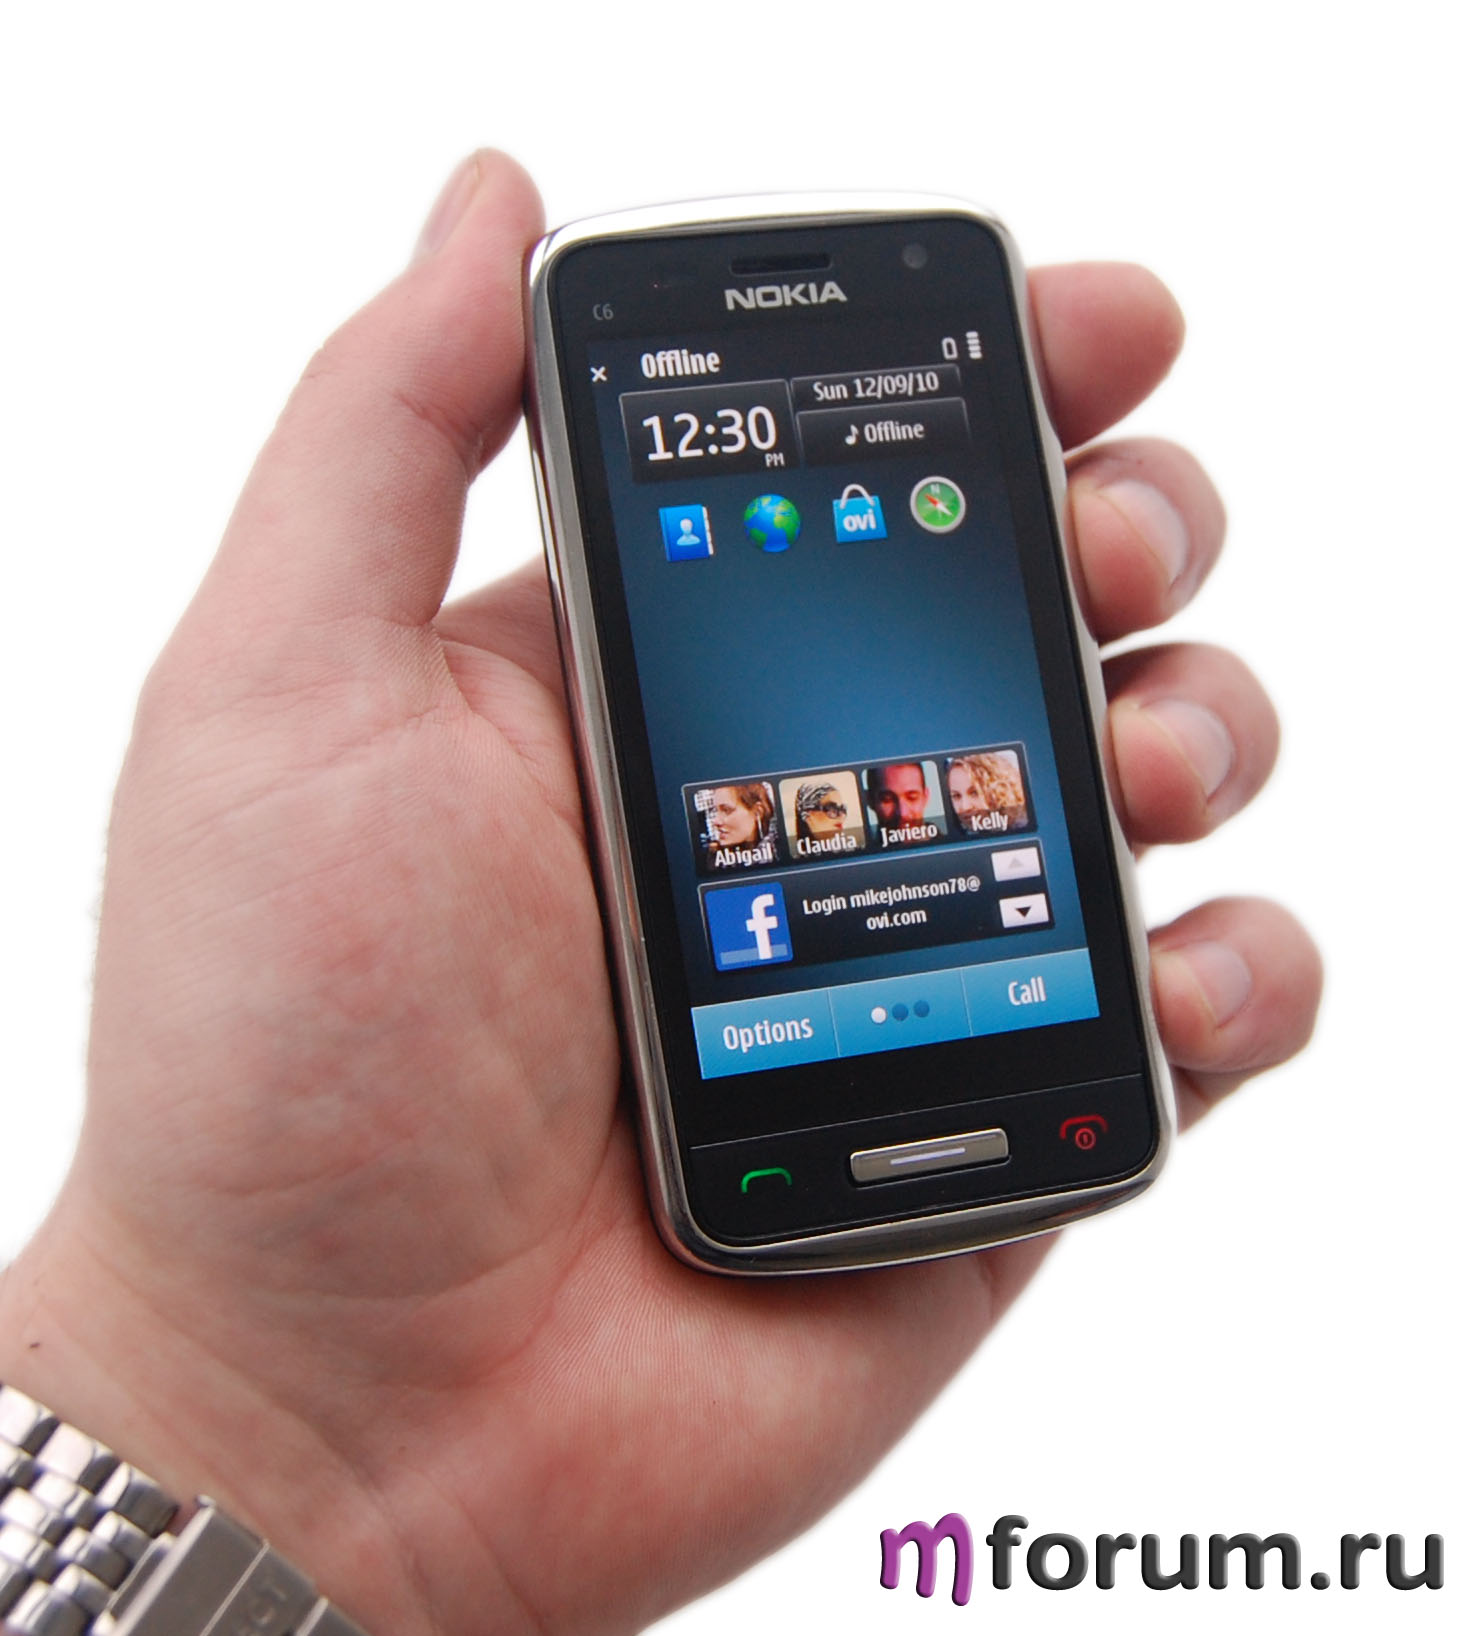 Download whatsapp messenger for nokia c601  Overwhelming-success cf